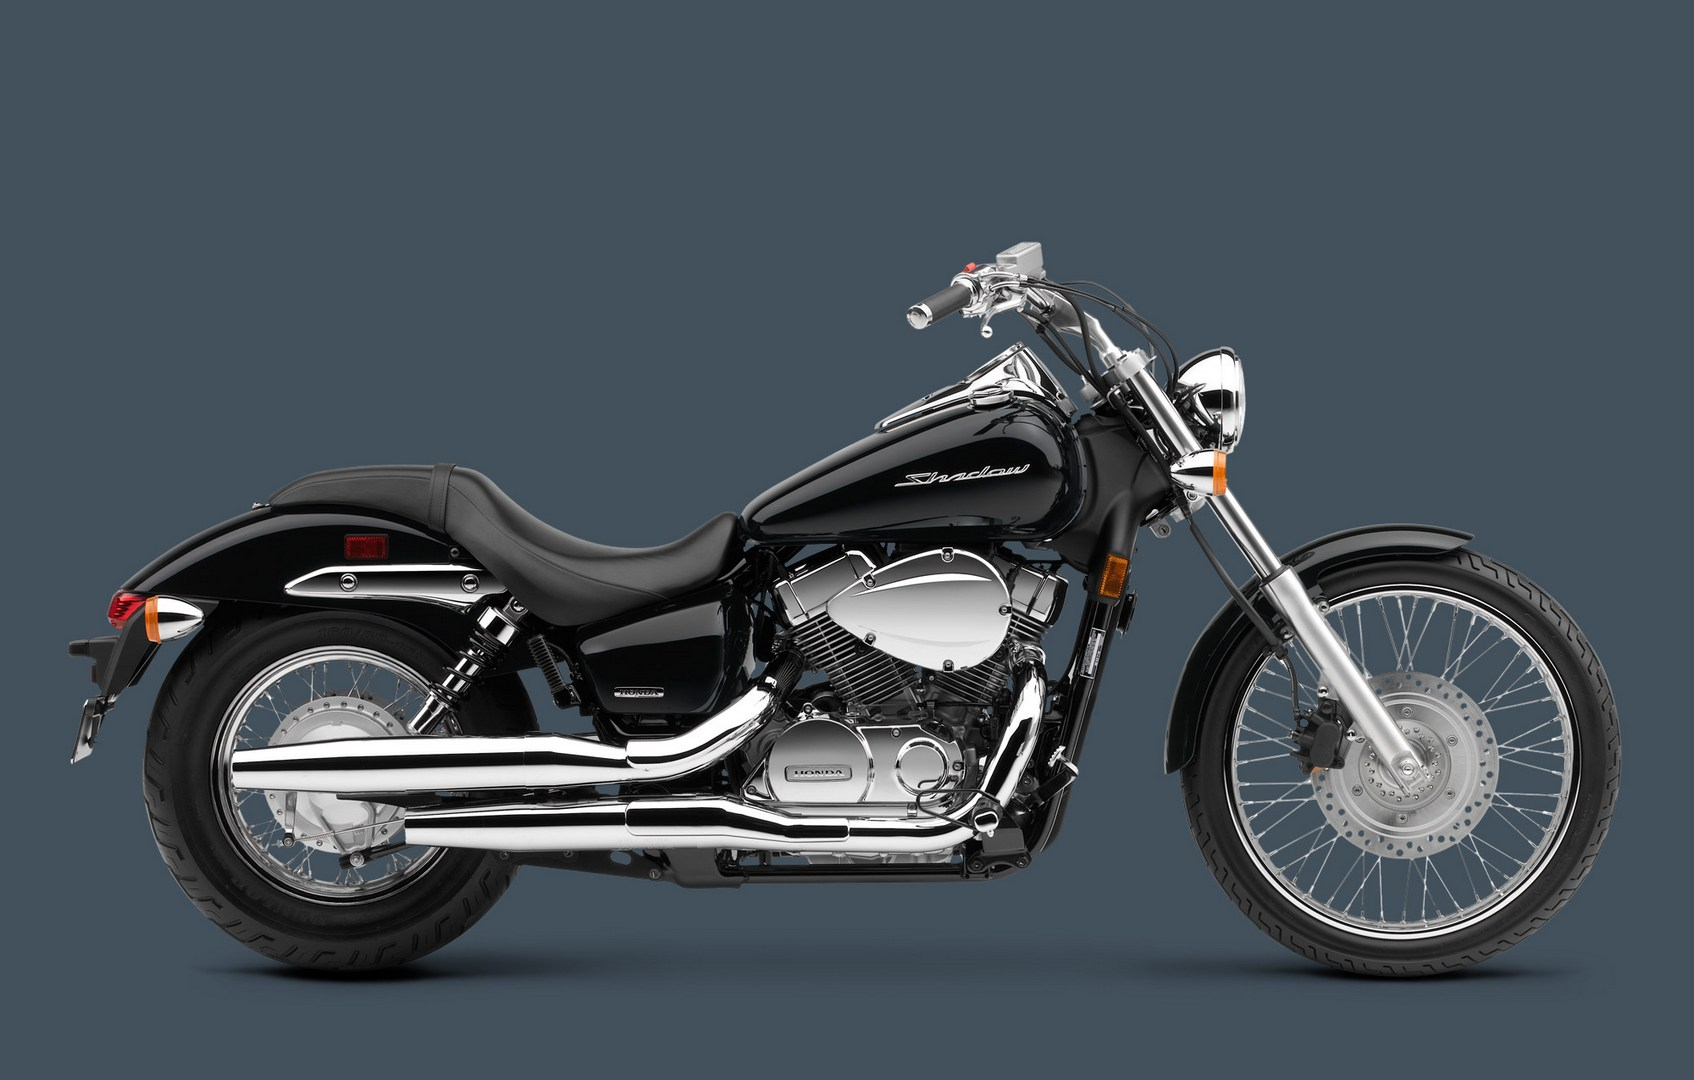 Honda Shadow Spirit 750 #2